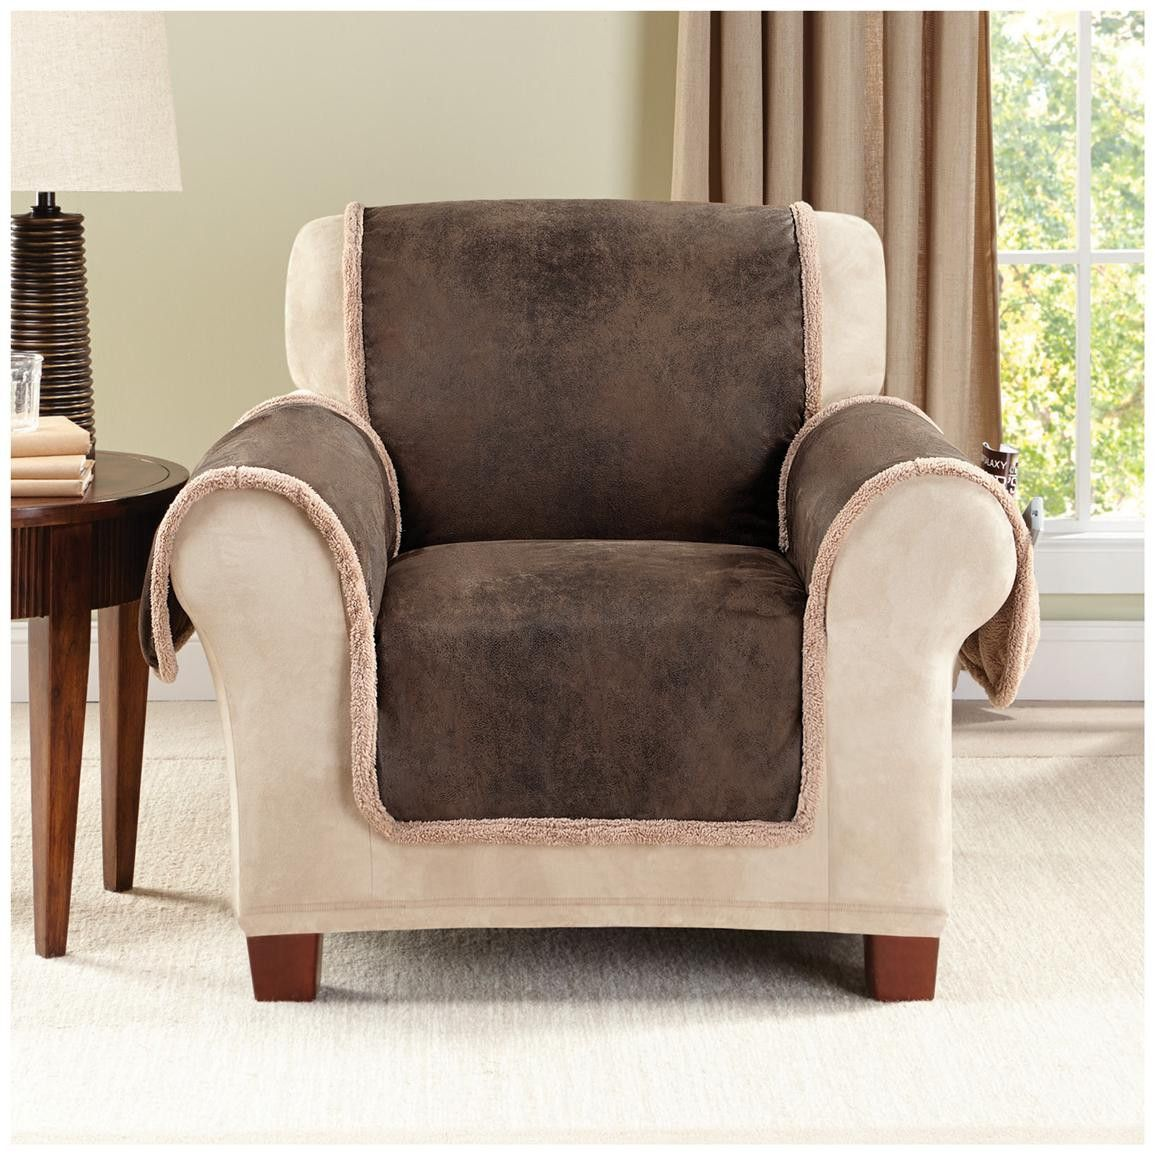 Superbe Recliner Chair Armrest Covers   Country Home Office Furniture Check More At  Http://